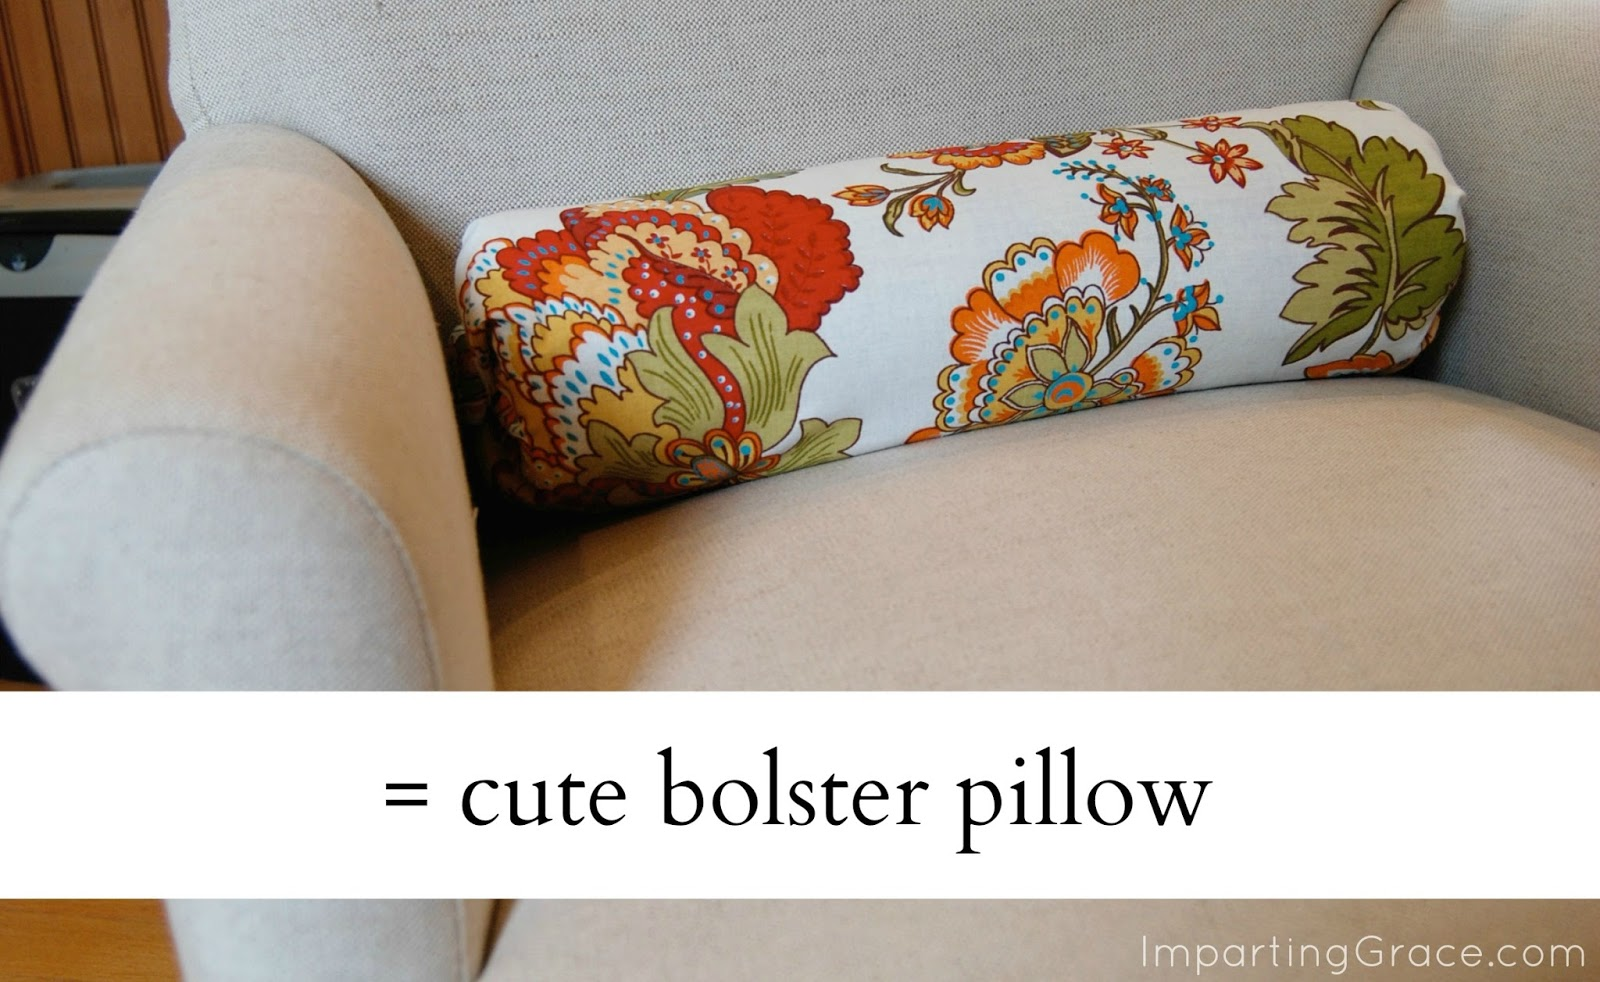 How To Make Cute Decorative Pillows : Imparting Grace: Super-easy decorative pillow made from scraps